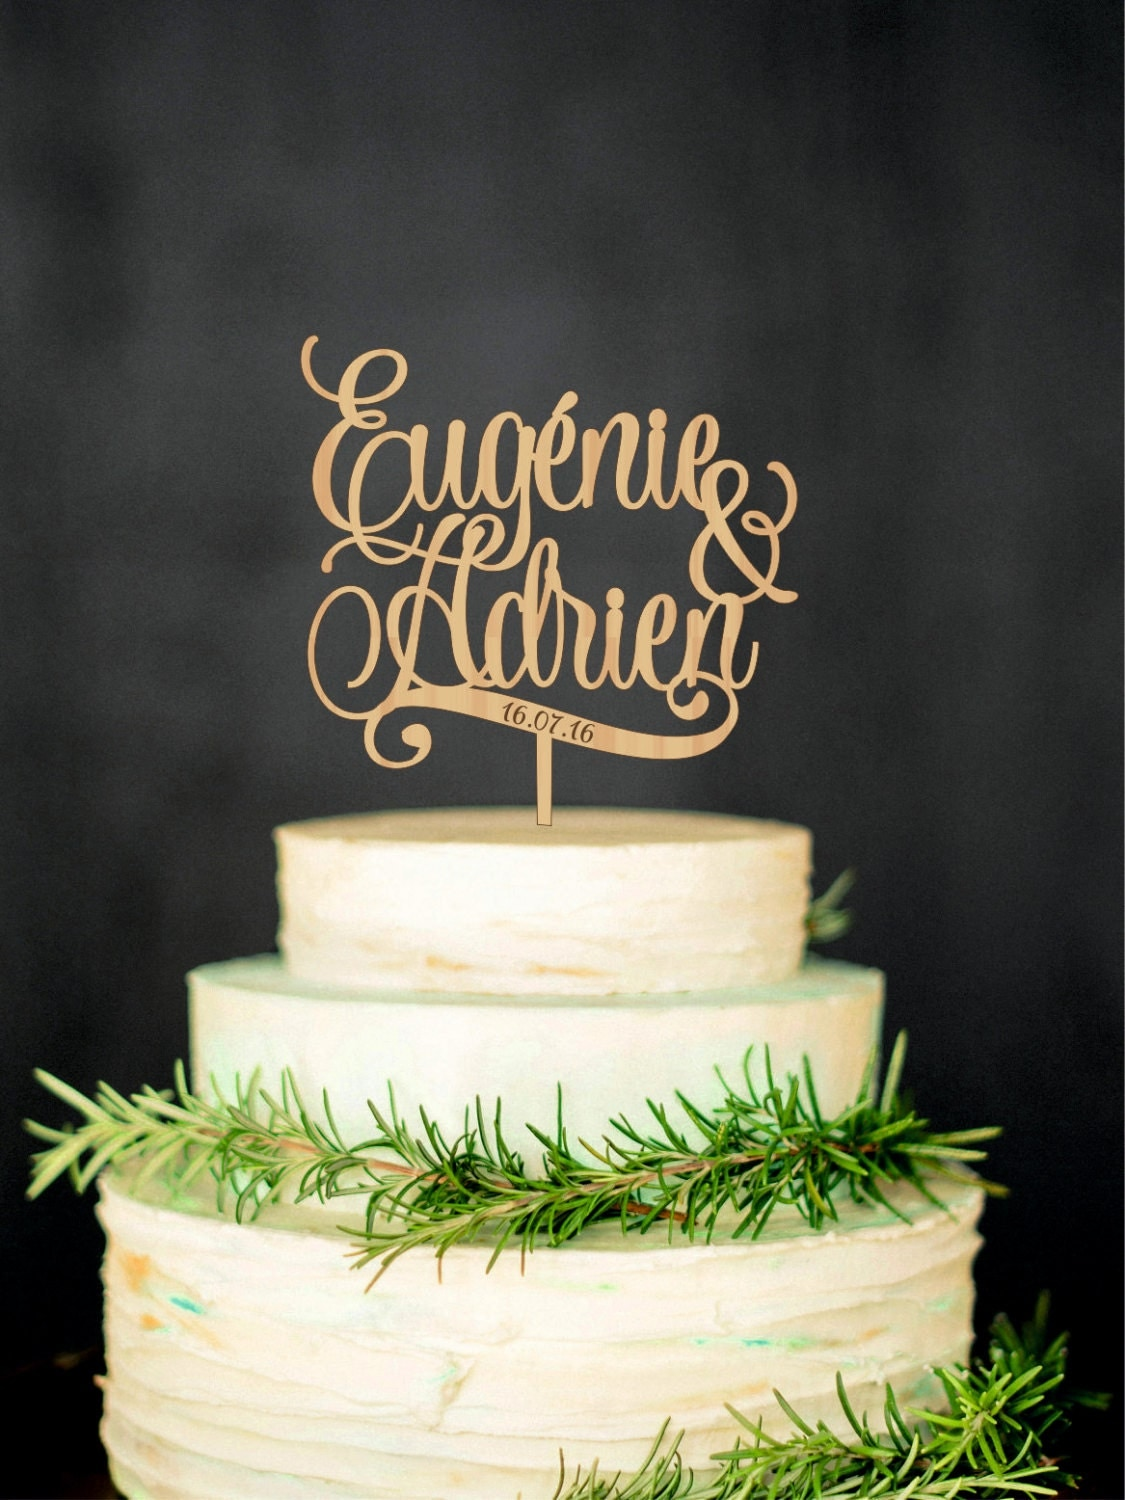 Personalized wedding cake topper with names and date custom